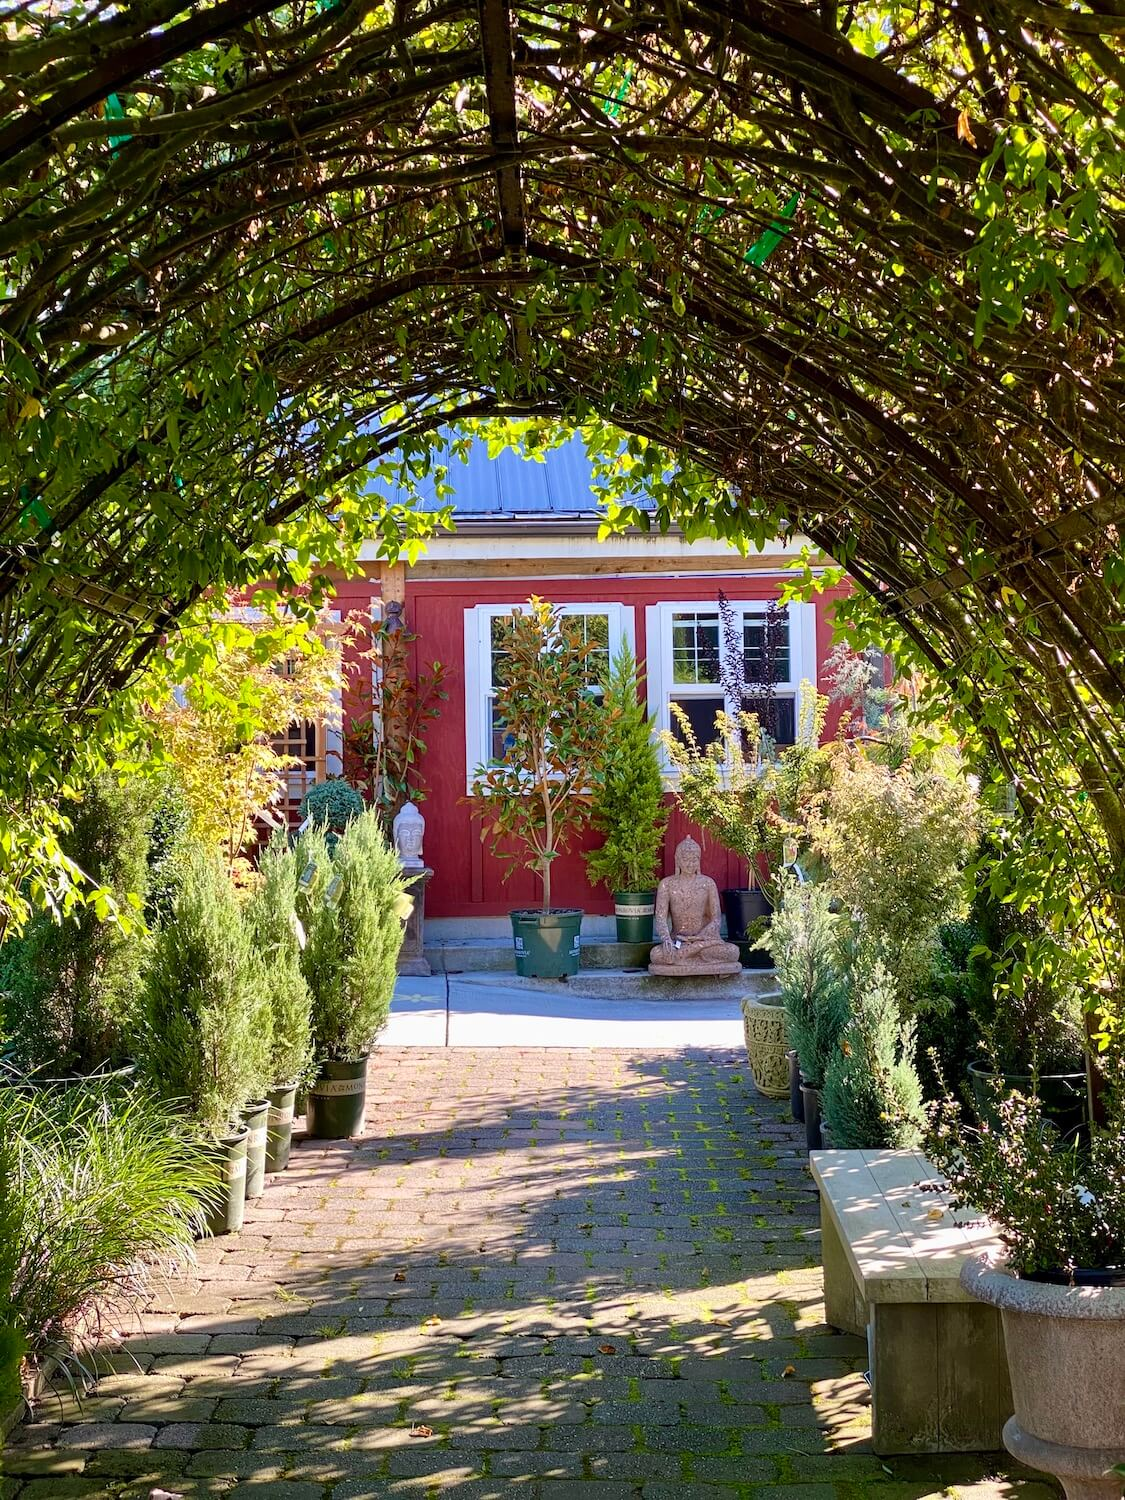 Visiting a nursery is a fun thing to do on Whidbey Island. Here, a red garden shed with white trim around the windows is seen beyond an arbor of vine plants growing in a way that makes a cathedral shaped roof over this brick passageway.